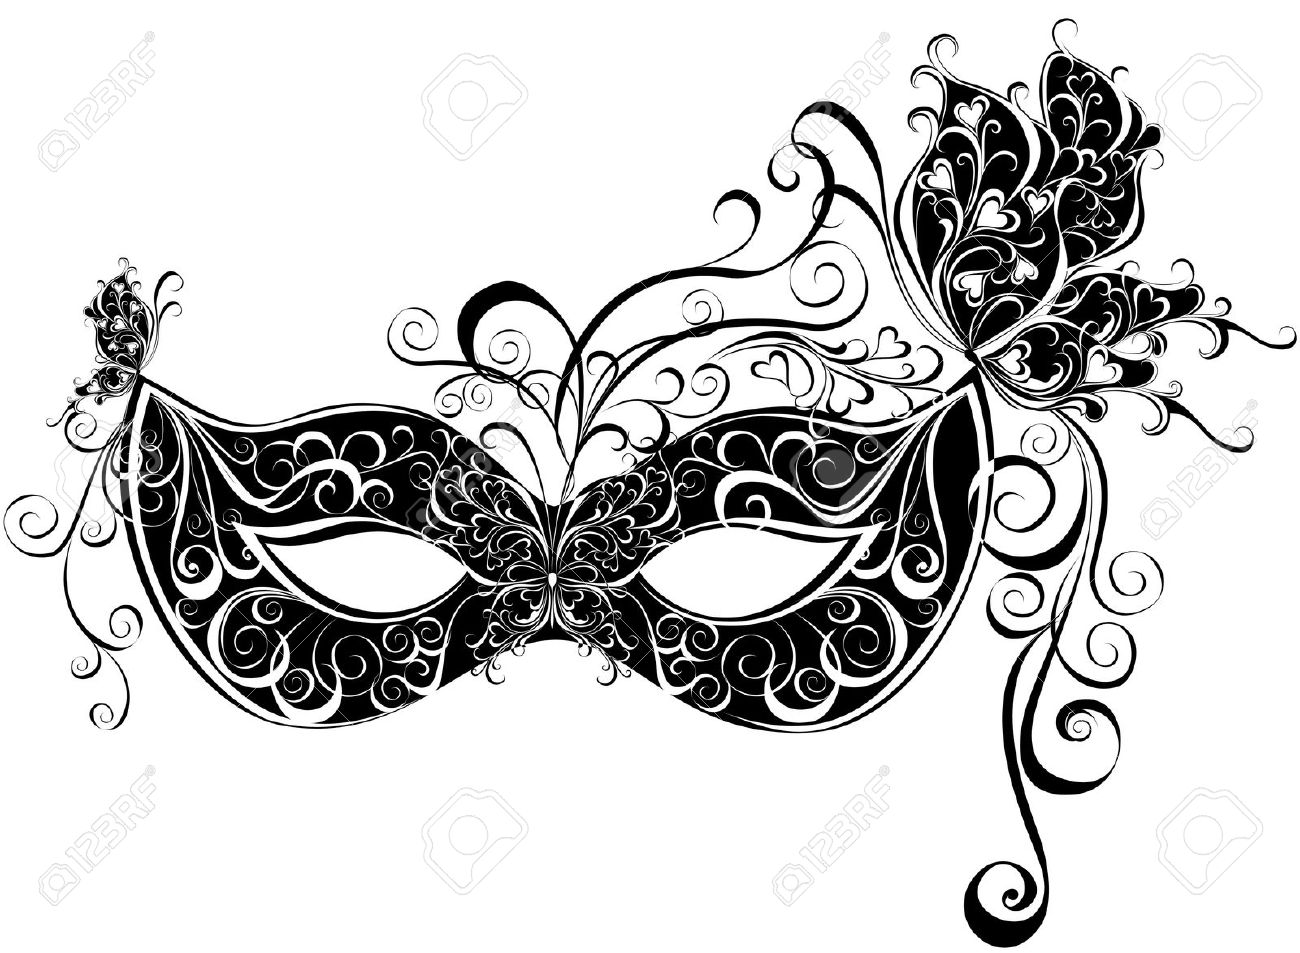 Masquerade Mask Clipart Look At Clip Art Images